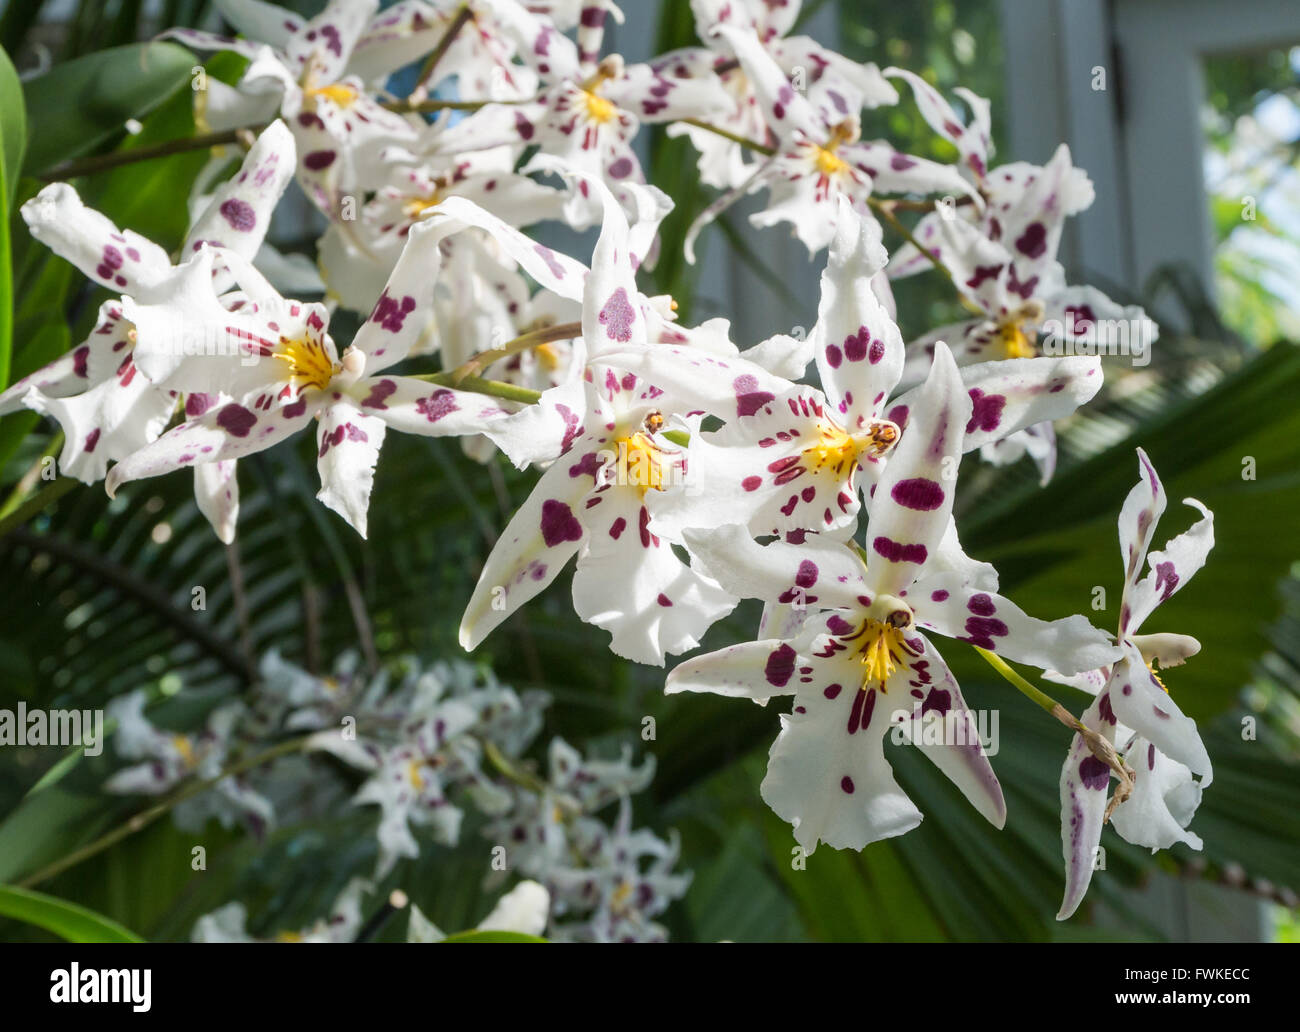 Beallara Bllra. Tropic Lily 'Hilo Spaceship' orchid (Orchidaceae) with white and purple spotted flowers - Stock Image